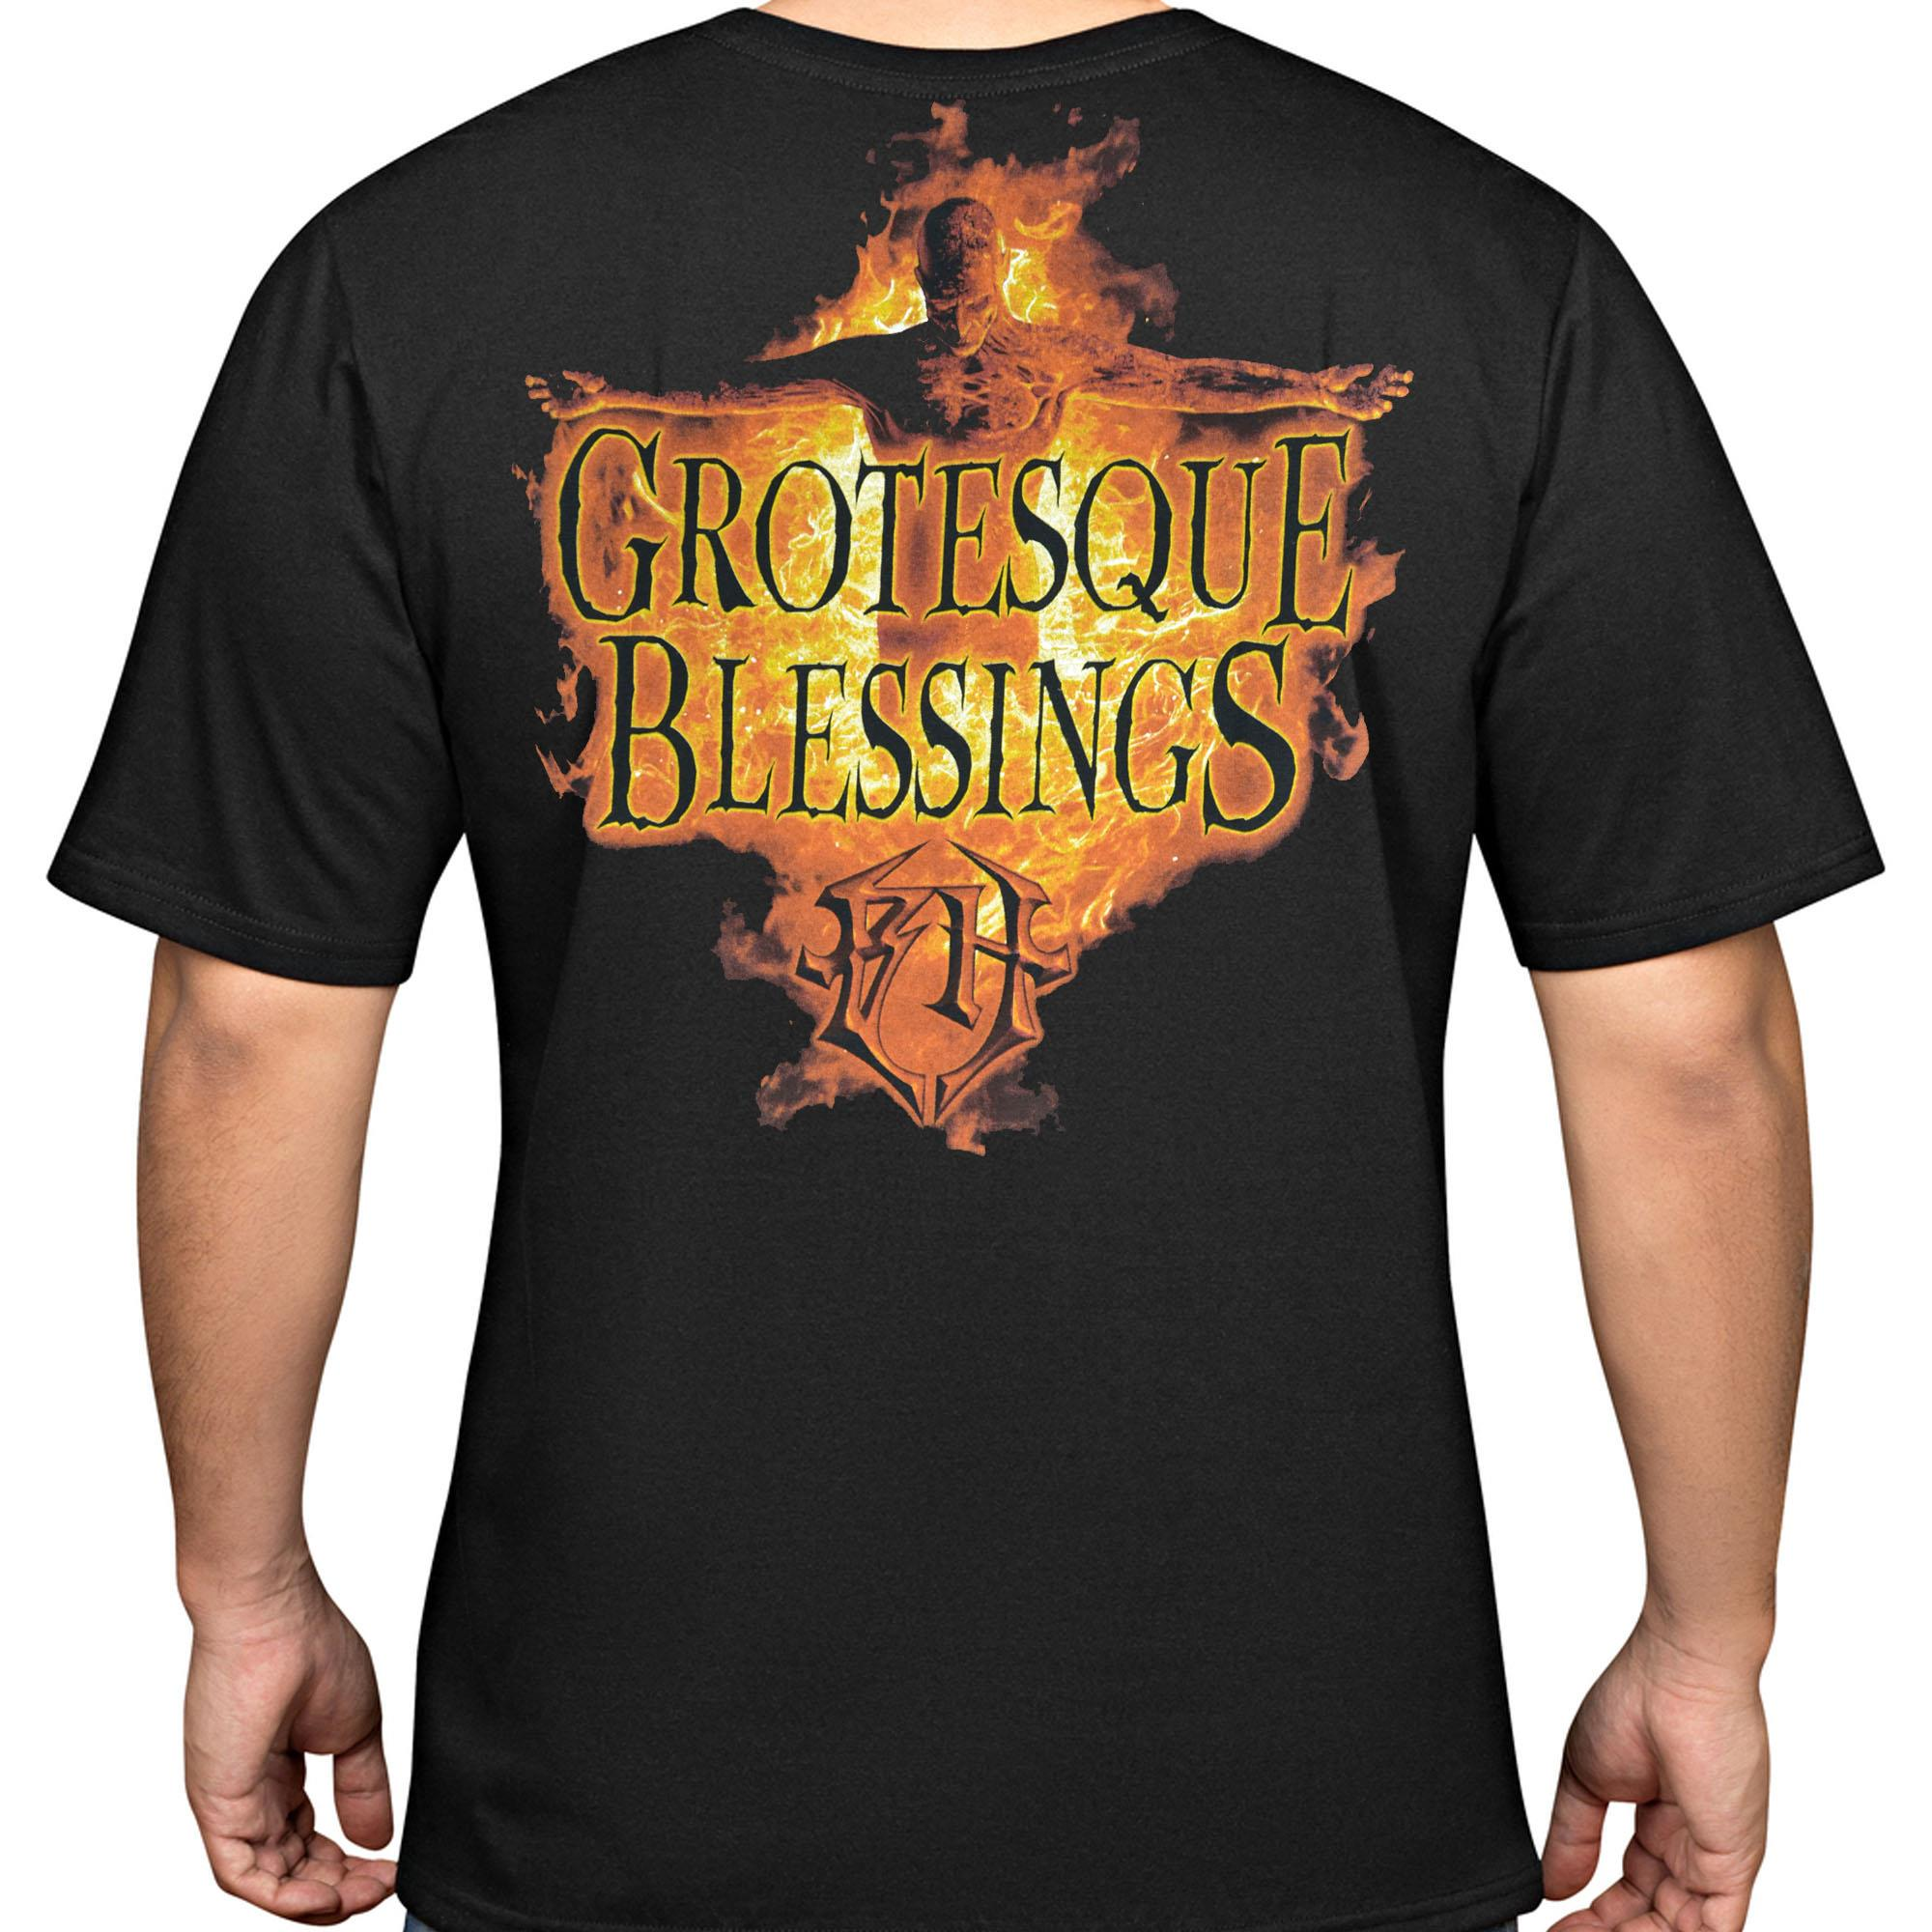 Grotesque Blessings